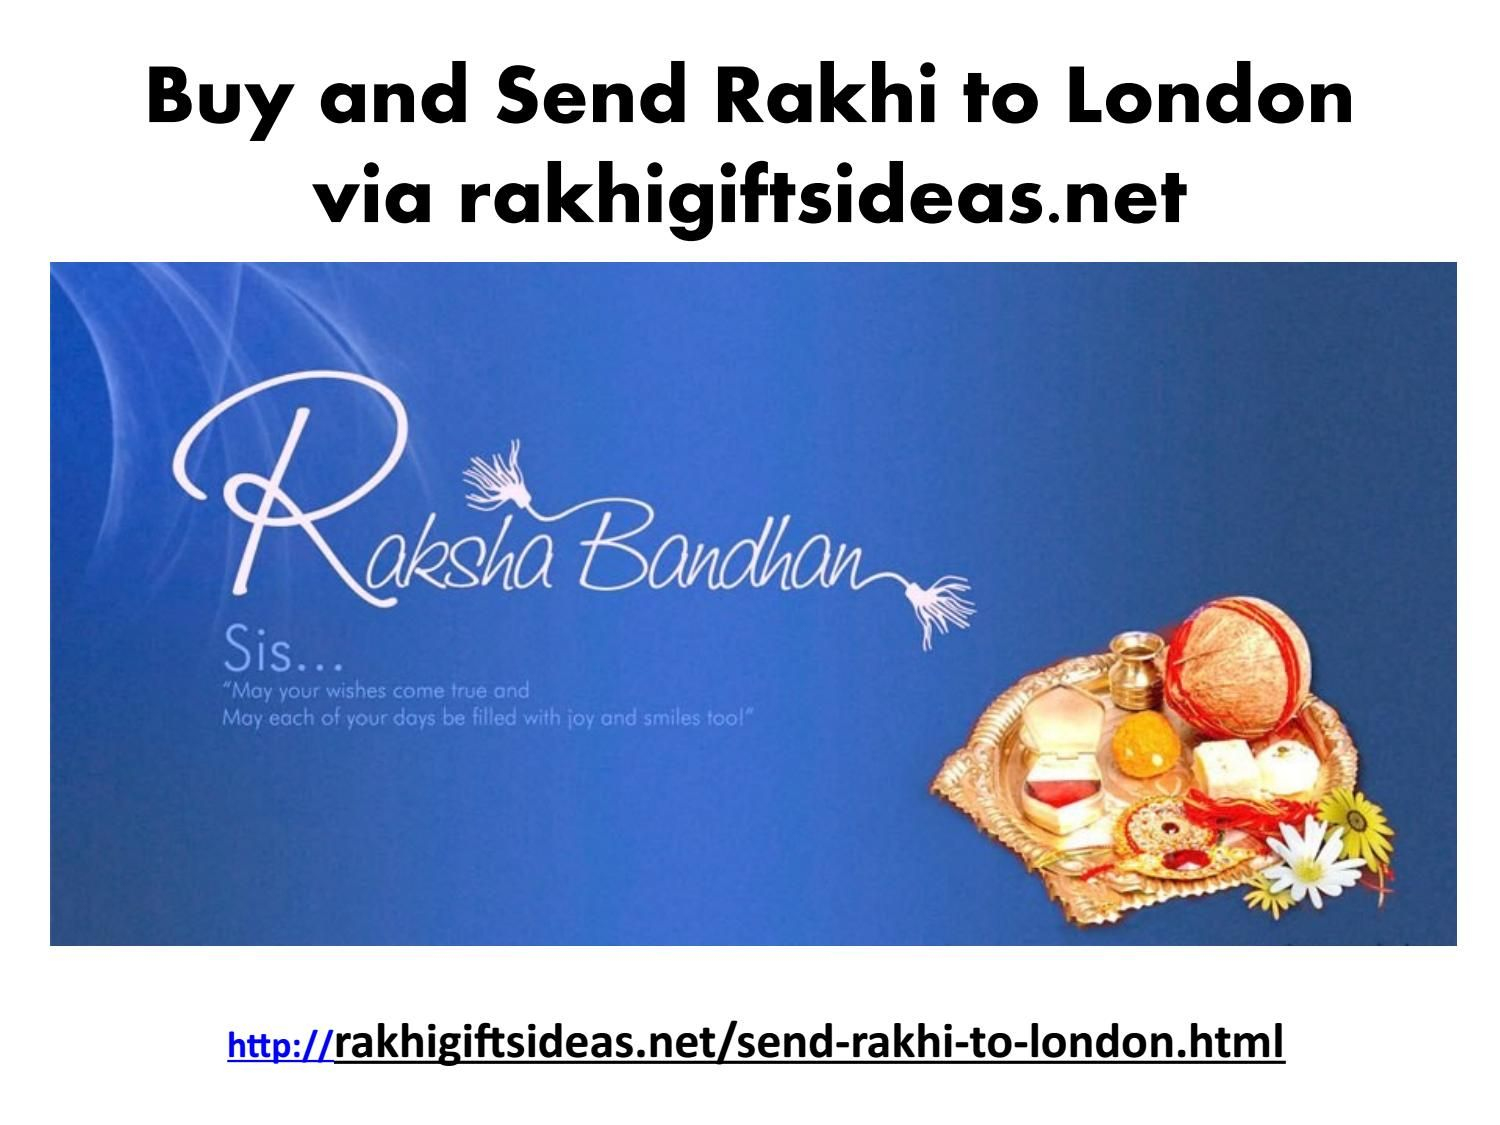 Buy and send rakhi to london via rakhigiftsideas net  On this Raksha Bandhan Buy and Send Rakhi to London and surprise your loved one via rakhigiftsideas.net. Also Send  Rakhi Gift Hampers,Rakhi Sets ,Designer Rakhi and Many More.  To know more Just visit: http://rakhigiftsideas.net/send-rakhi-to-london.html